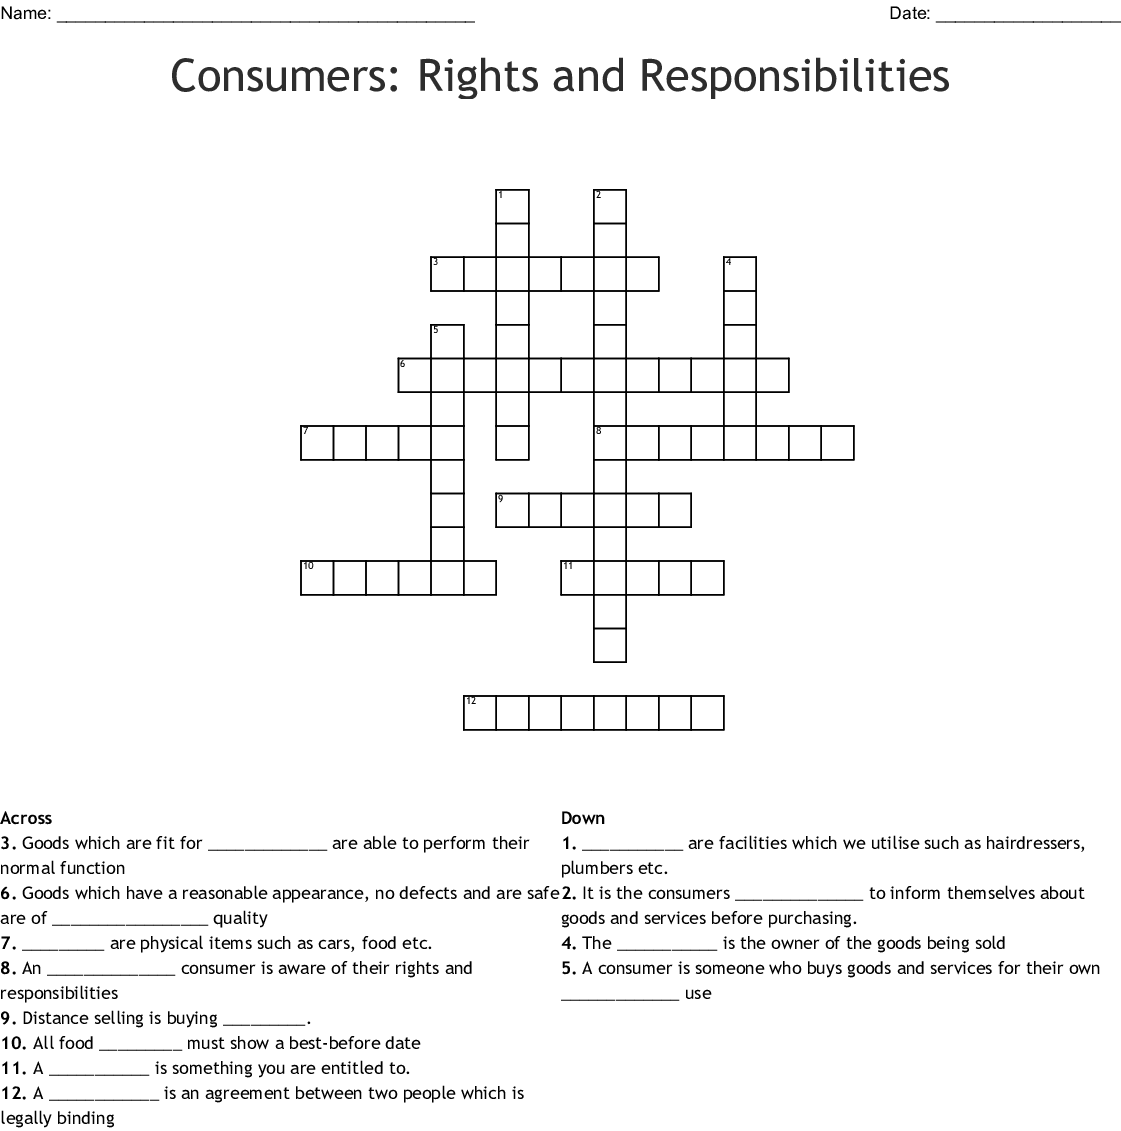 Consumers Rights And Responsibilities Crossword